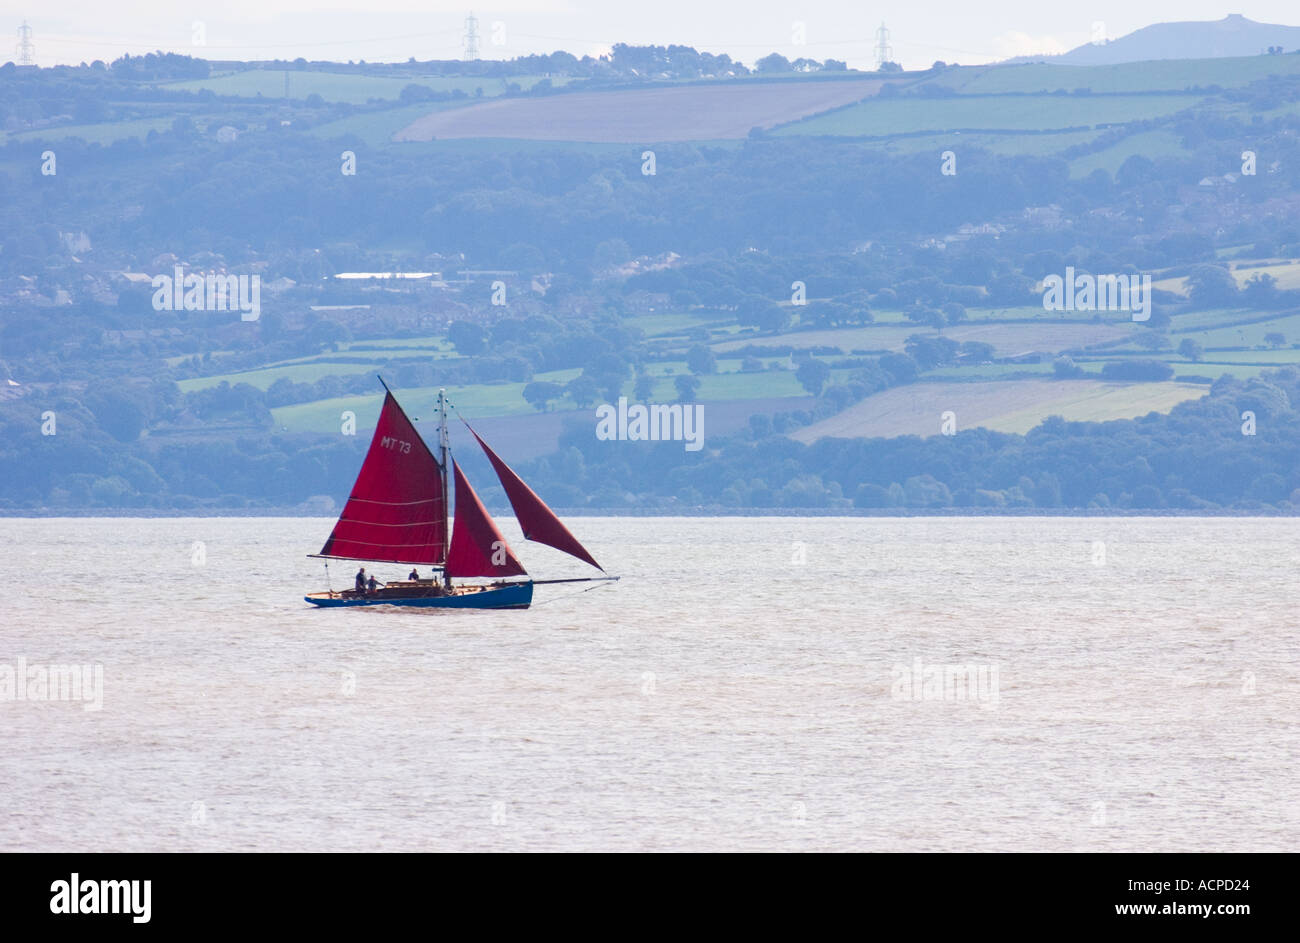 Sailing in the Dee Estuary as seen from Hilbre Island - Stock Image